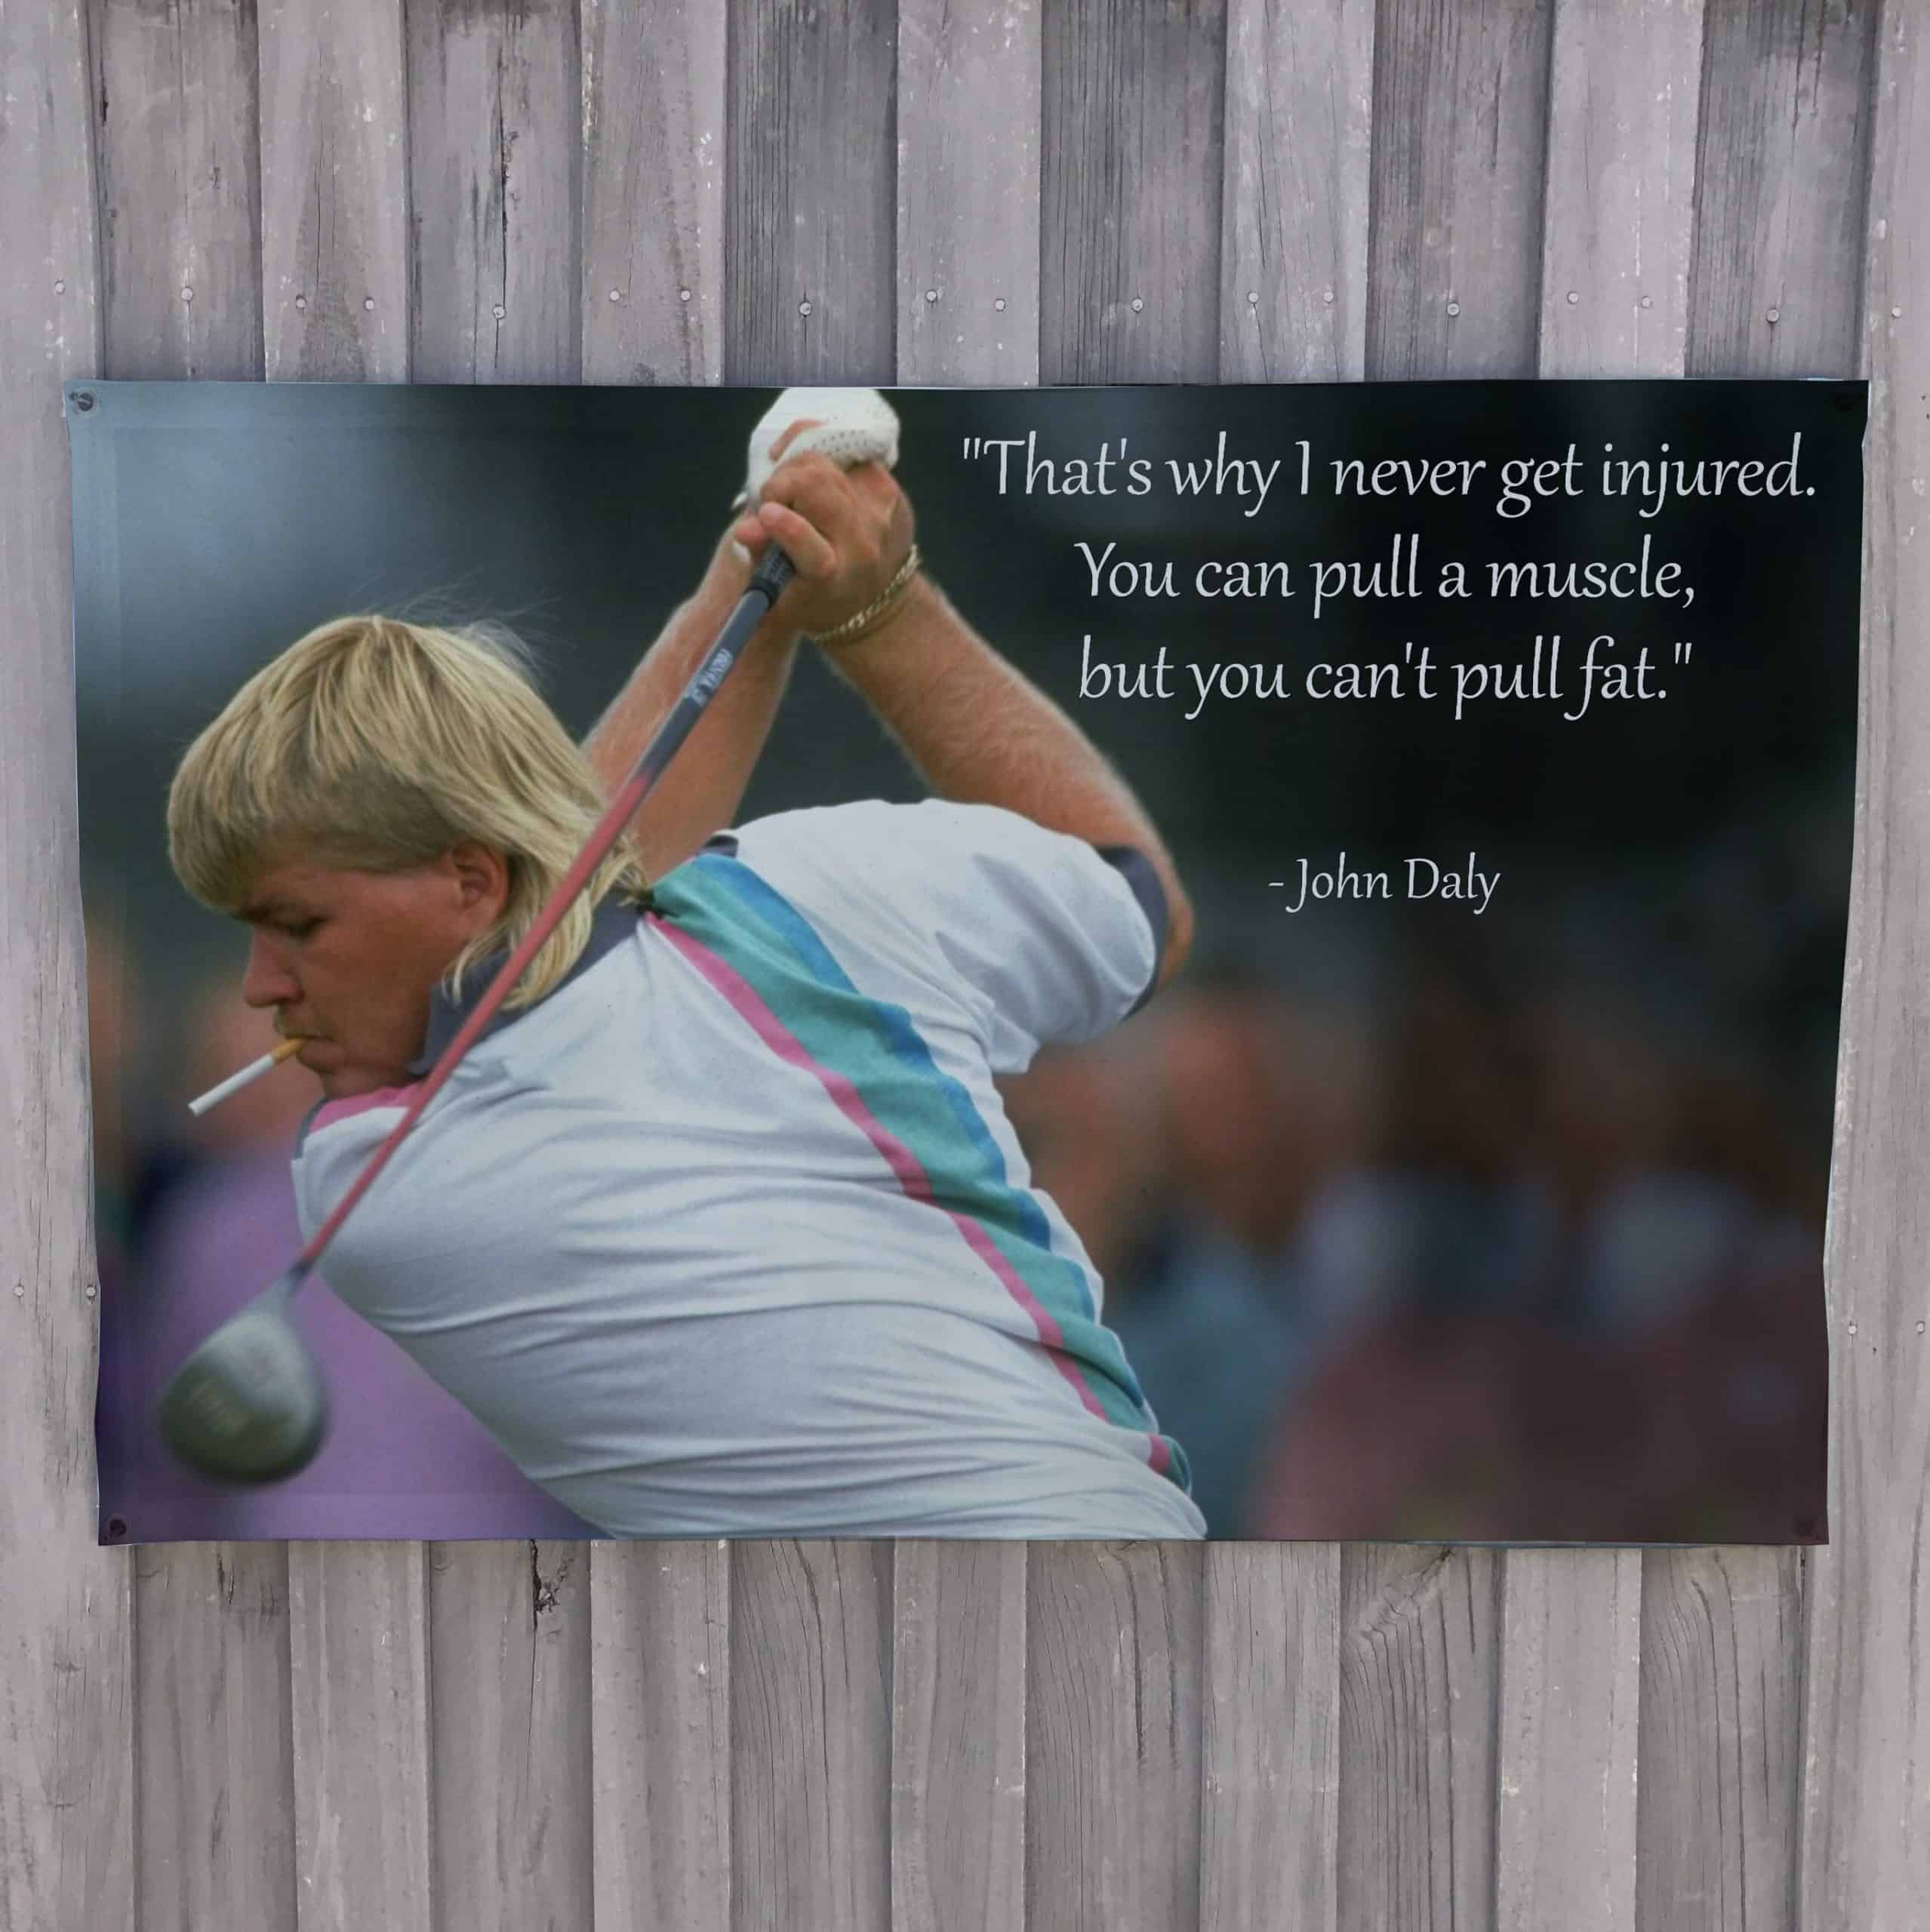 John Daly quote on secret of victory